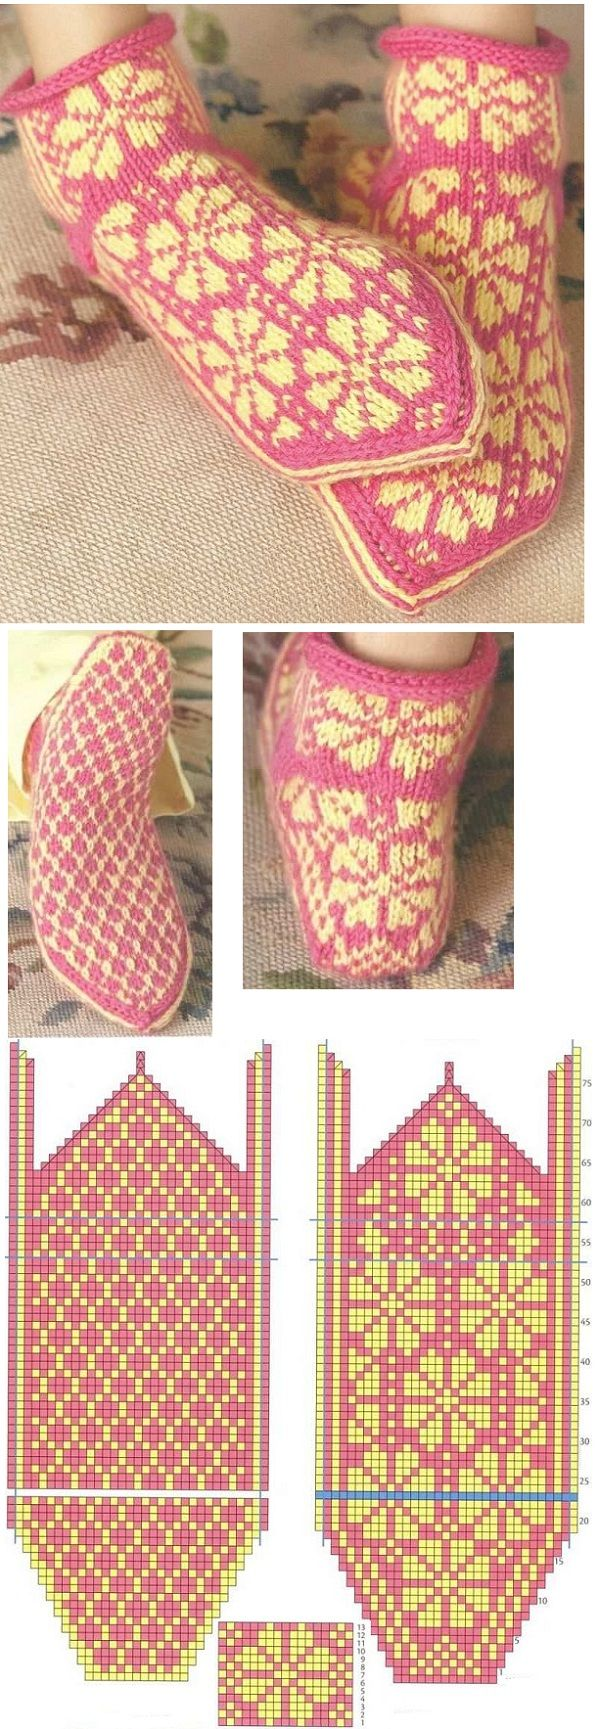 These are taken from a copyrighted book called Knitting Scandinavian Slippers and Socks by Laura Farson вязание носков с мыска